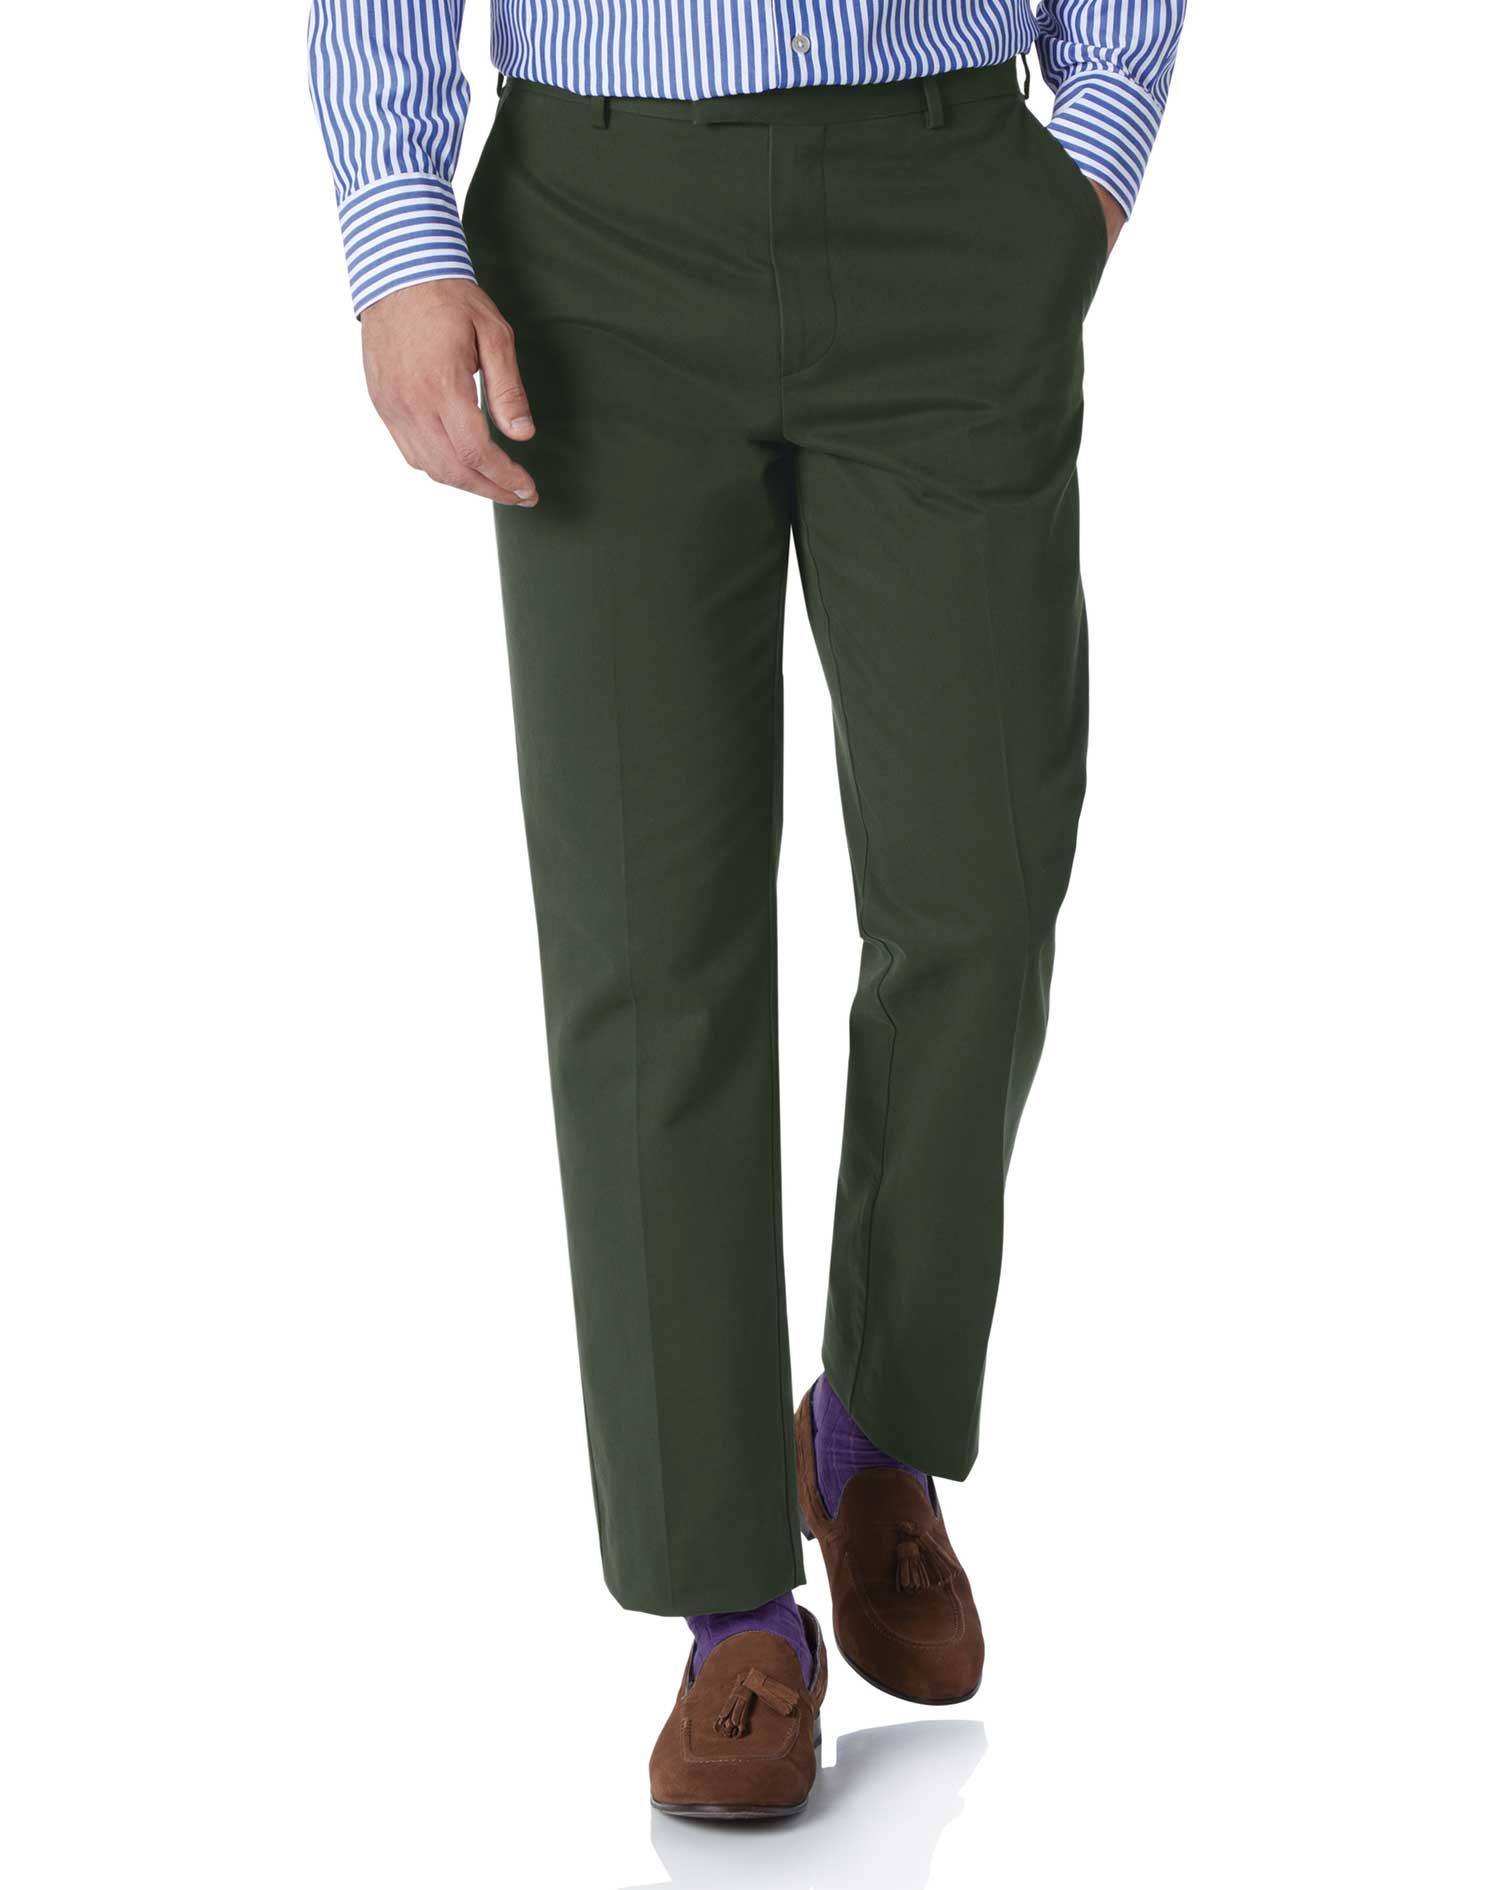 Dark Green Classic Fit Flat Front Non-Iron Cotton Chino Trousers Size W38 L30 by Charles Tyrwhitt